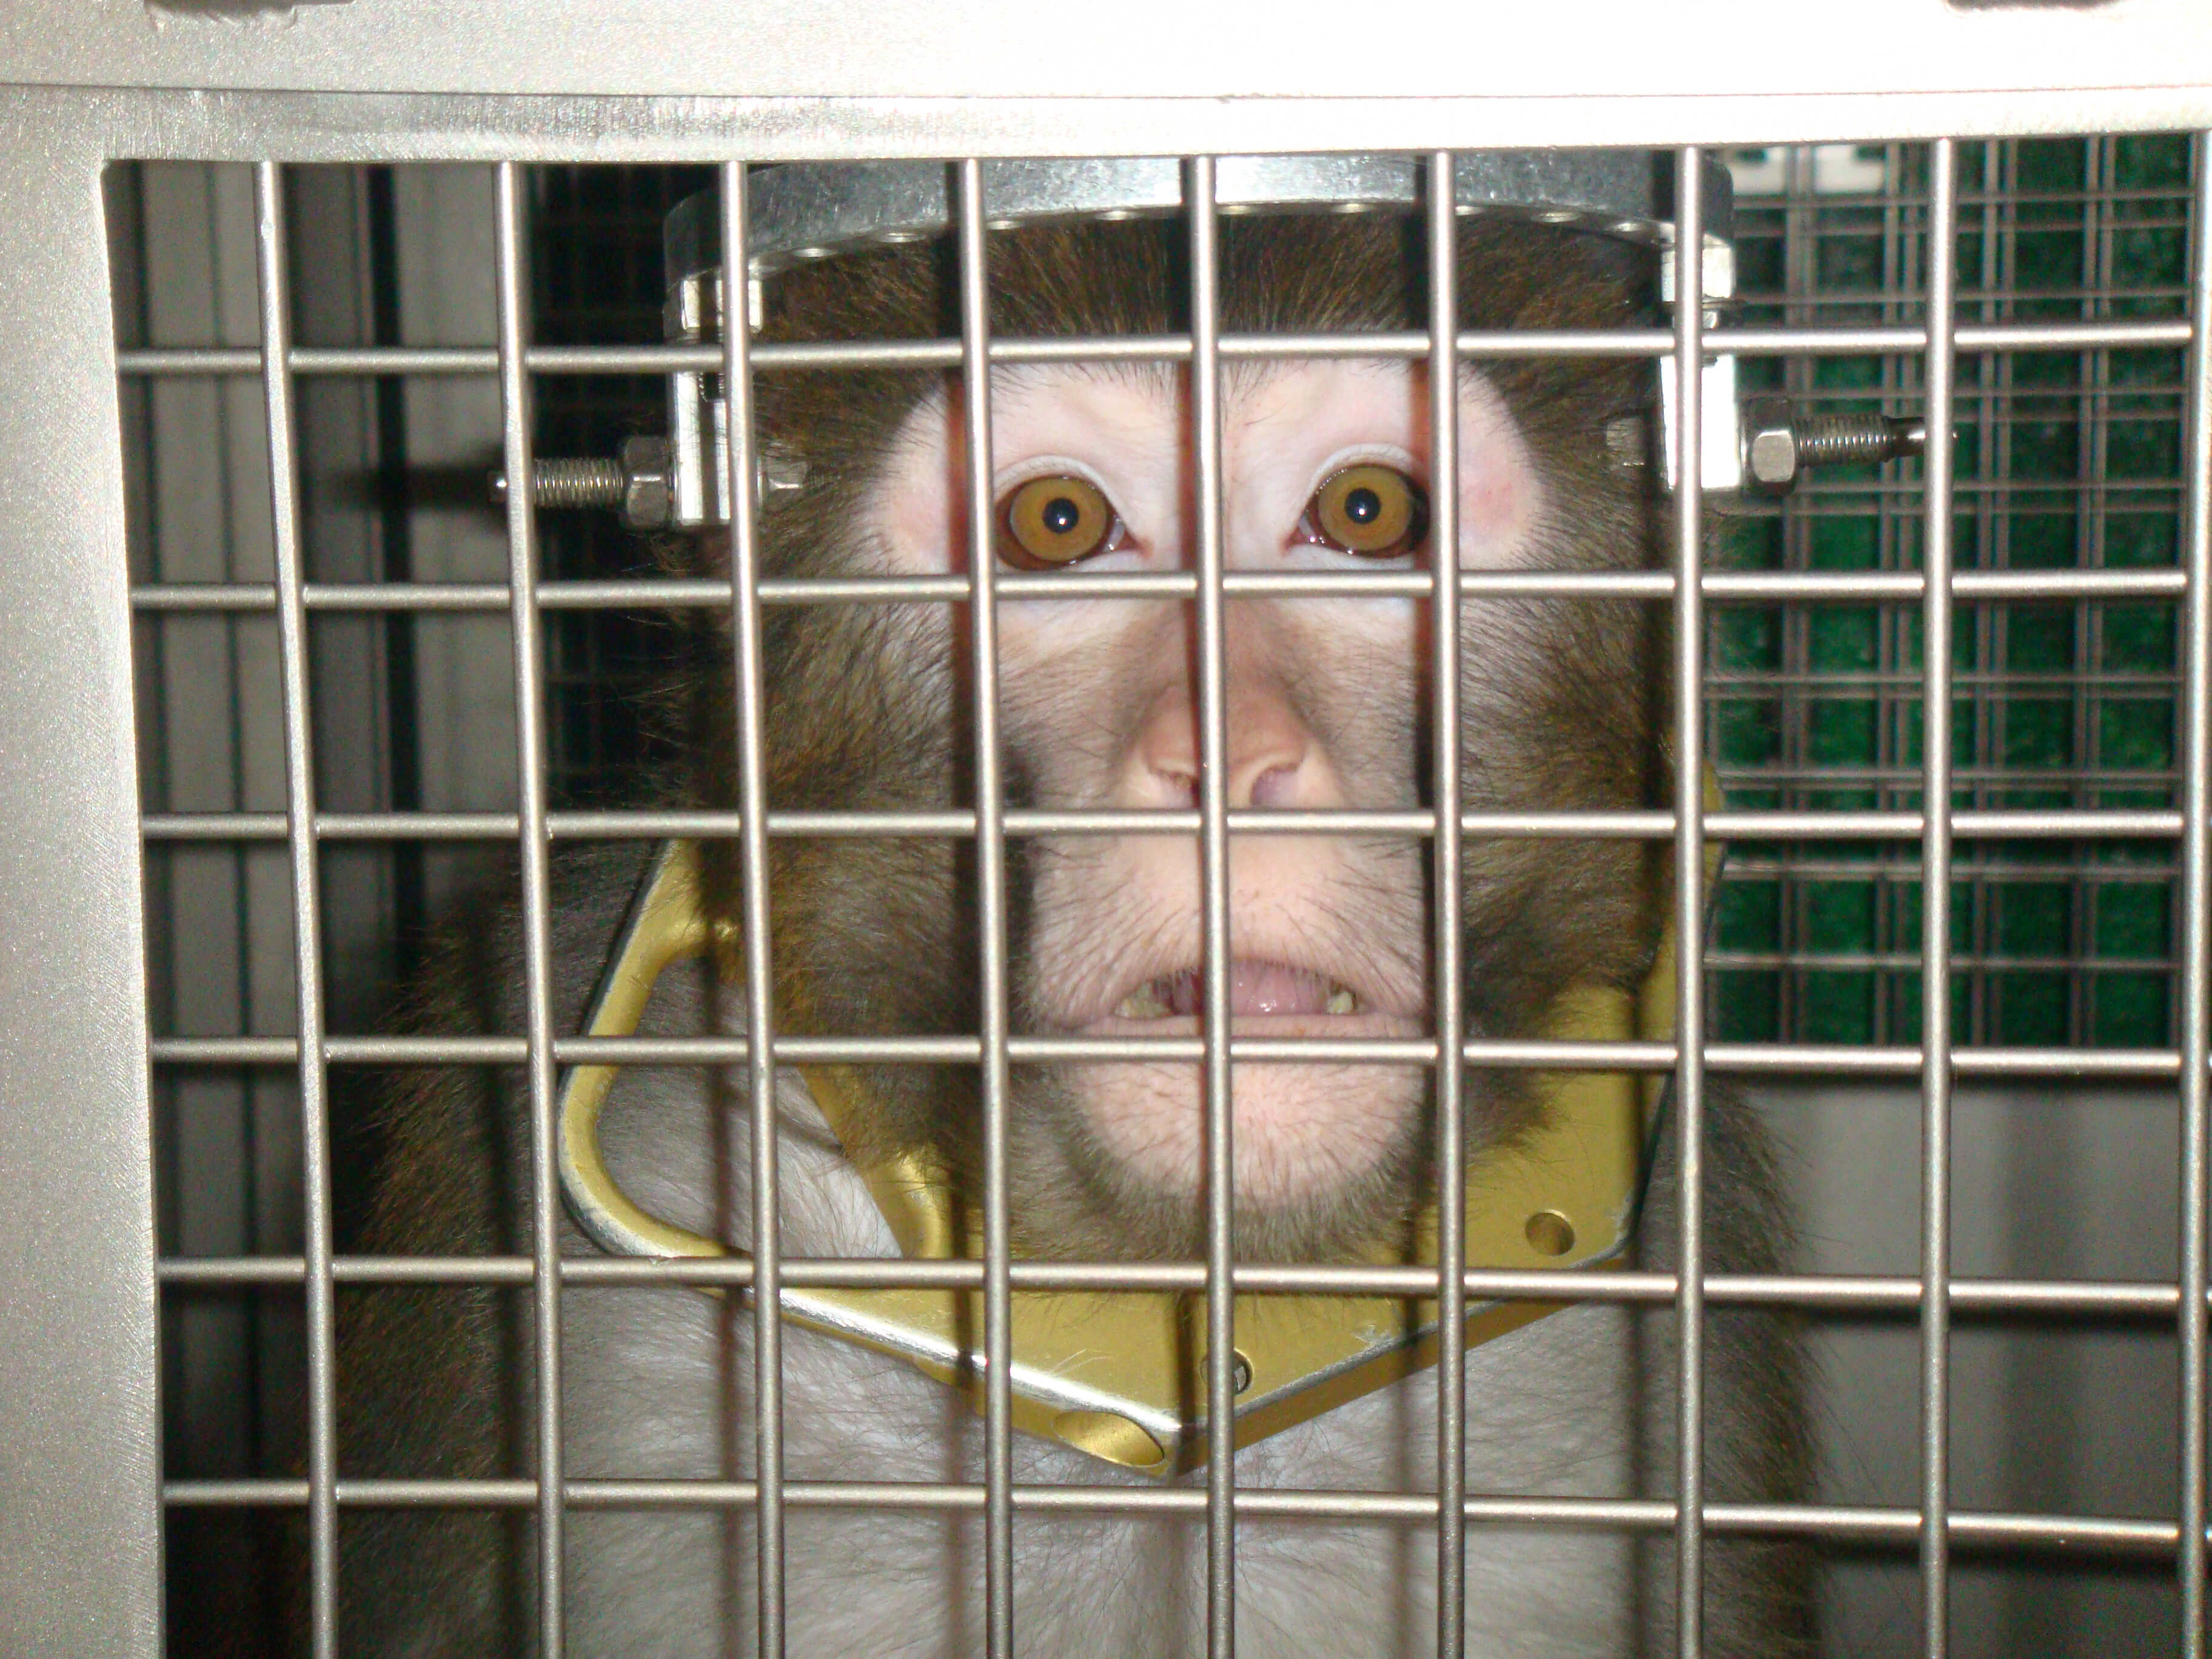 an analysis of the issue of animal experimentation in the united states Effects of animal testing essay on animal  analysis of the issue of animal testing  year 26 million animals in the united states are used for animal.